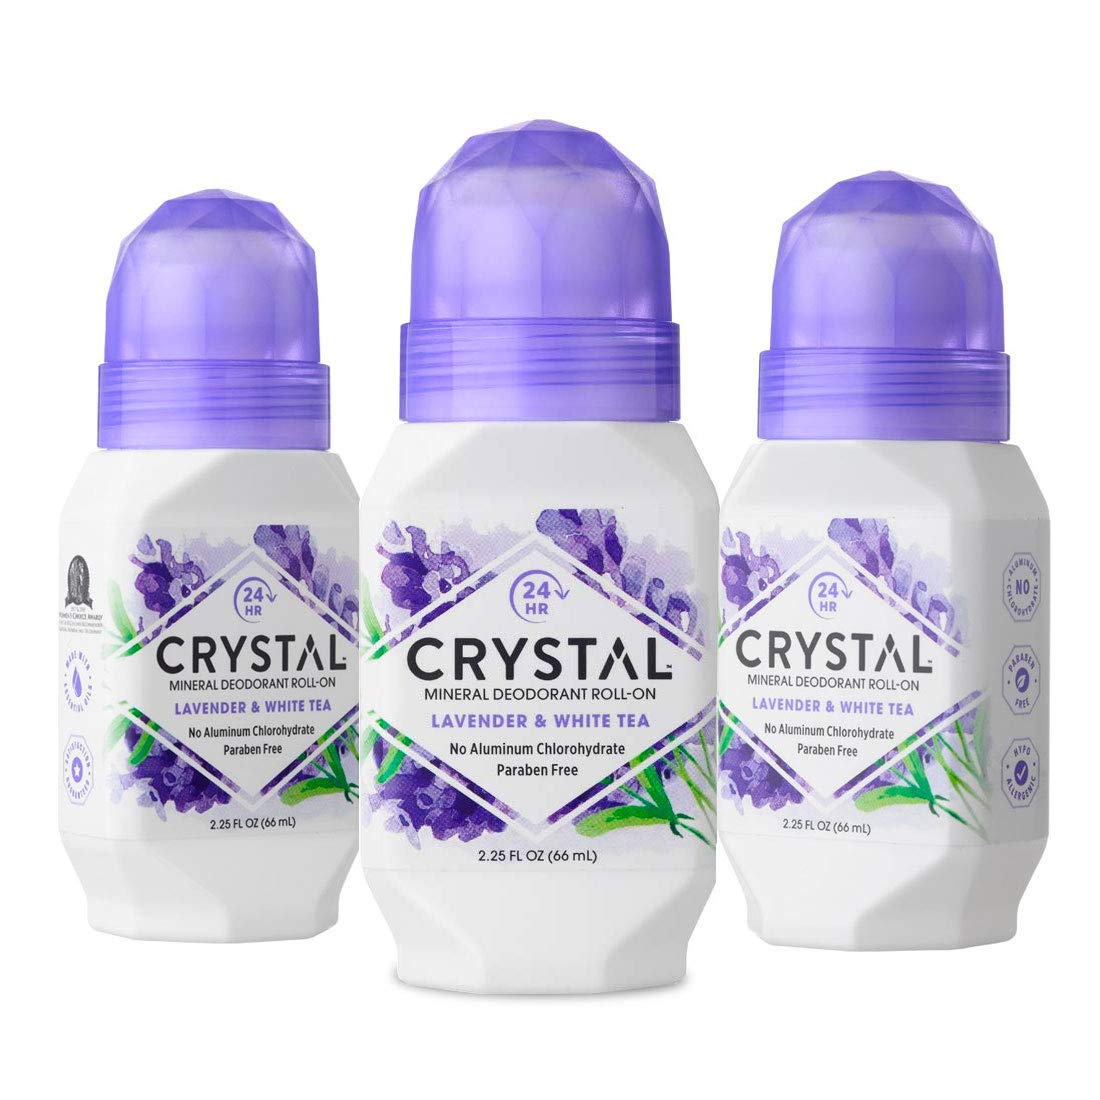 CRYSTAL Mineral Deodorant Roll-On Body Deodorant With 24-Hour Odor Protection, Lavender & White Tea, Non-Sticky Roll-On, Aluminium Chloride & Paraben Free, 2.25 FL OZ, Pack of 3